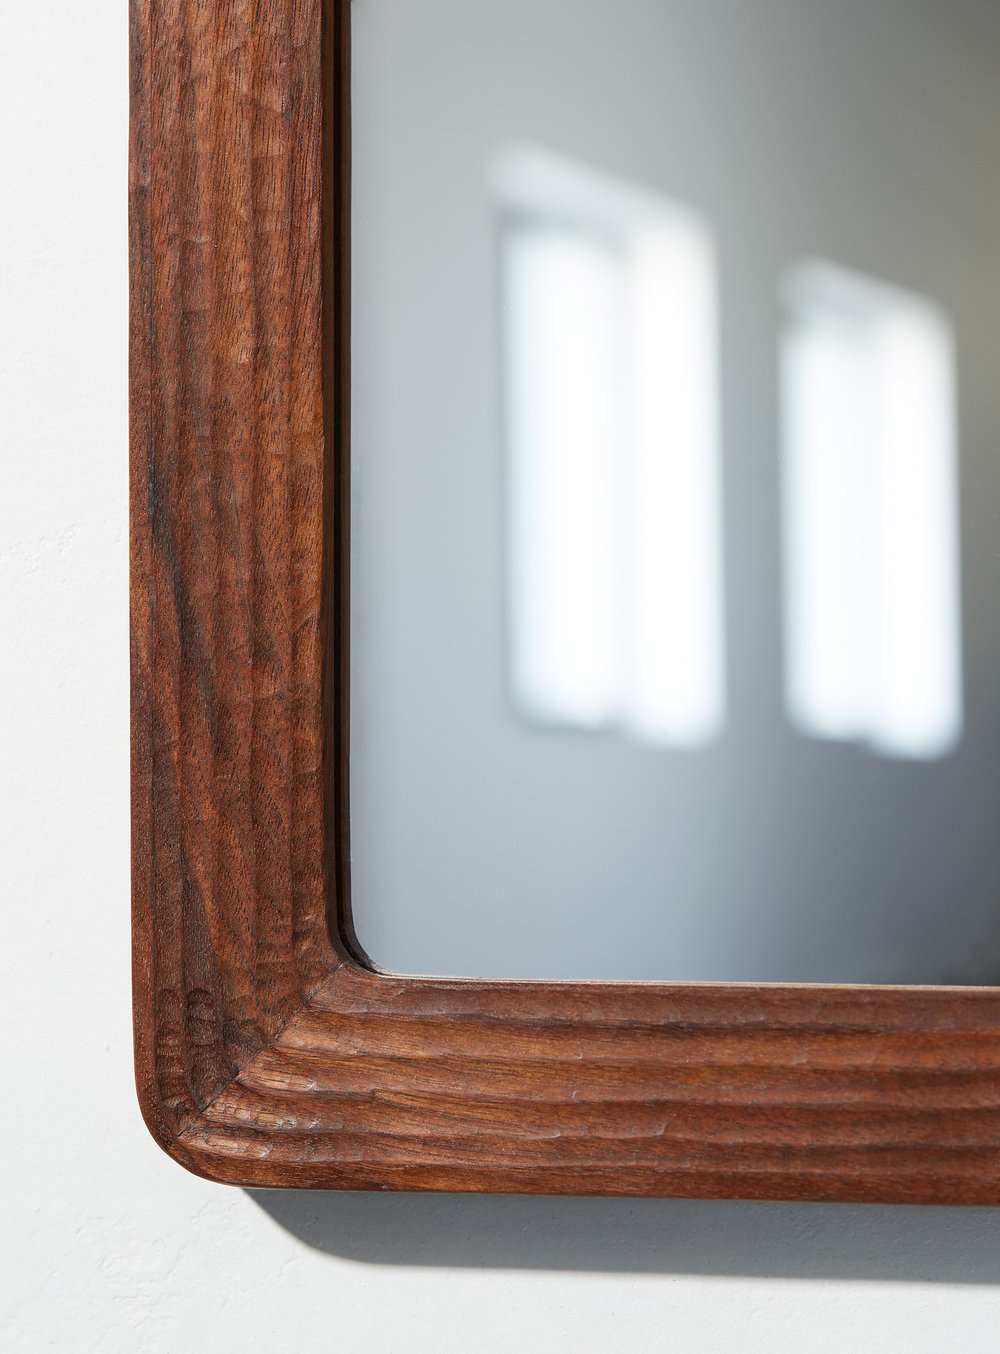 solid wood furniture, made in montreal, walnut mirror, hand carved, local montreal design, Emma Senft, sculpter à main, hand carved, noyer, bois, sur mesure, miroir, mobilier